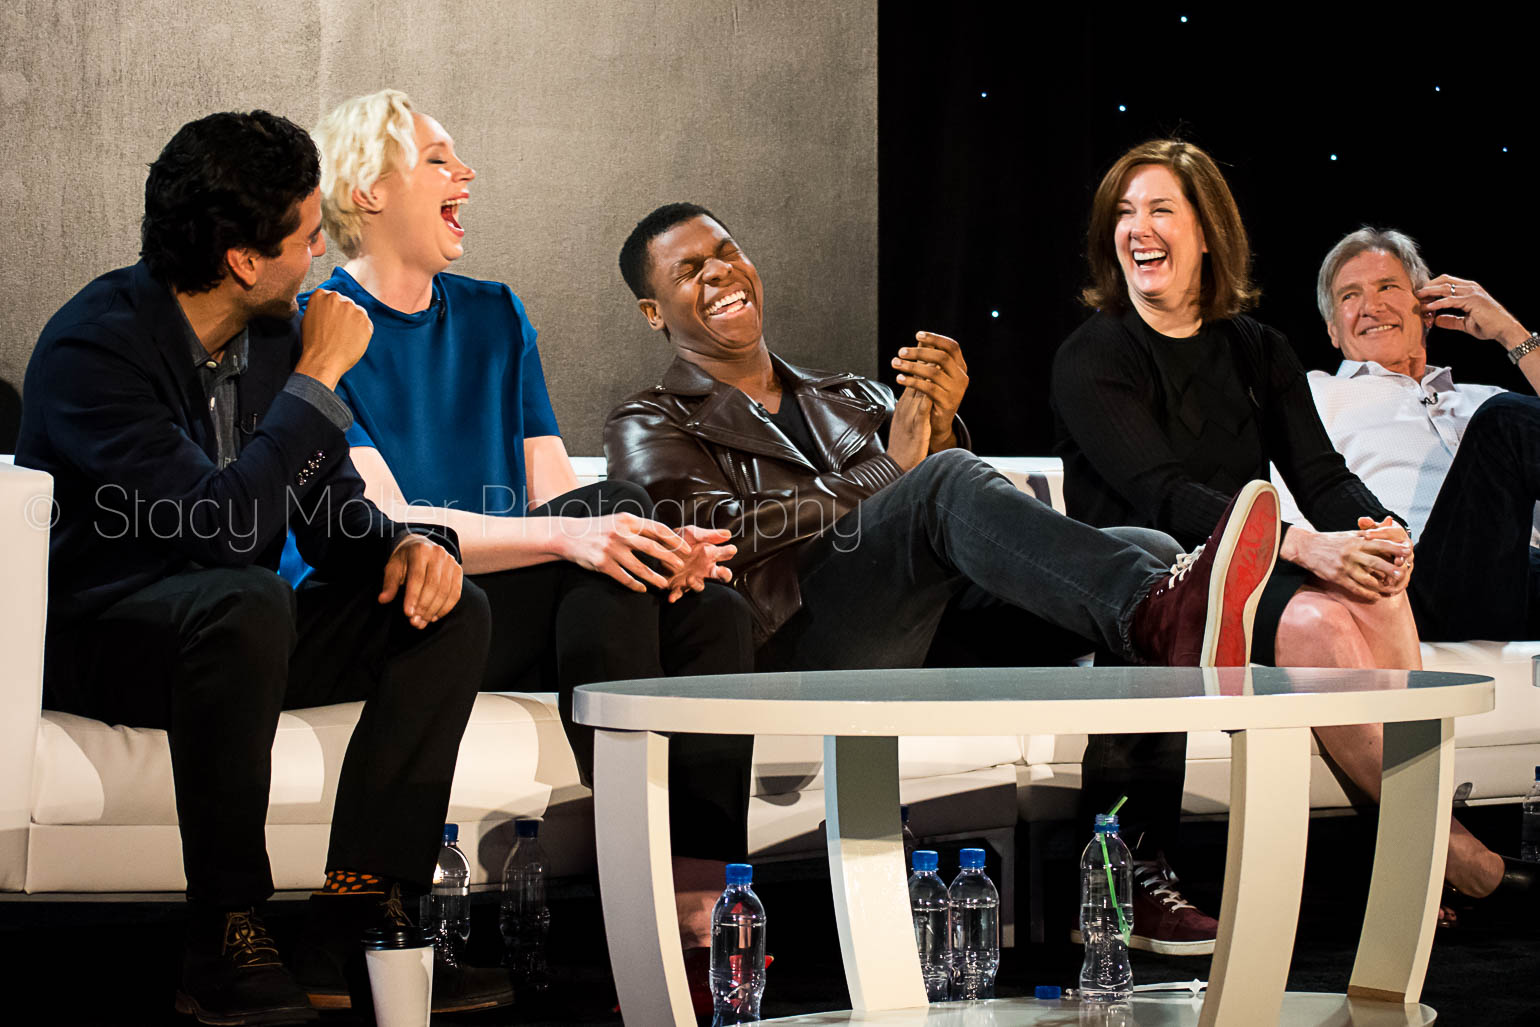 Harrison Ford, John Boyega, Oscar Isaac, Gwendoline Christie, Kathleen Kennedy - Star Wars The Force Awakens Press Conference